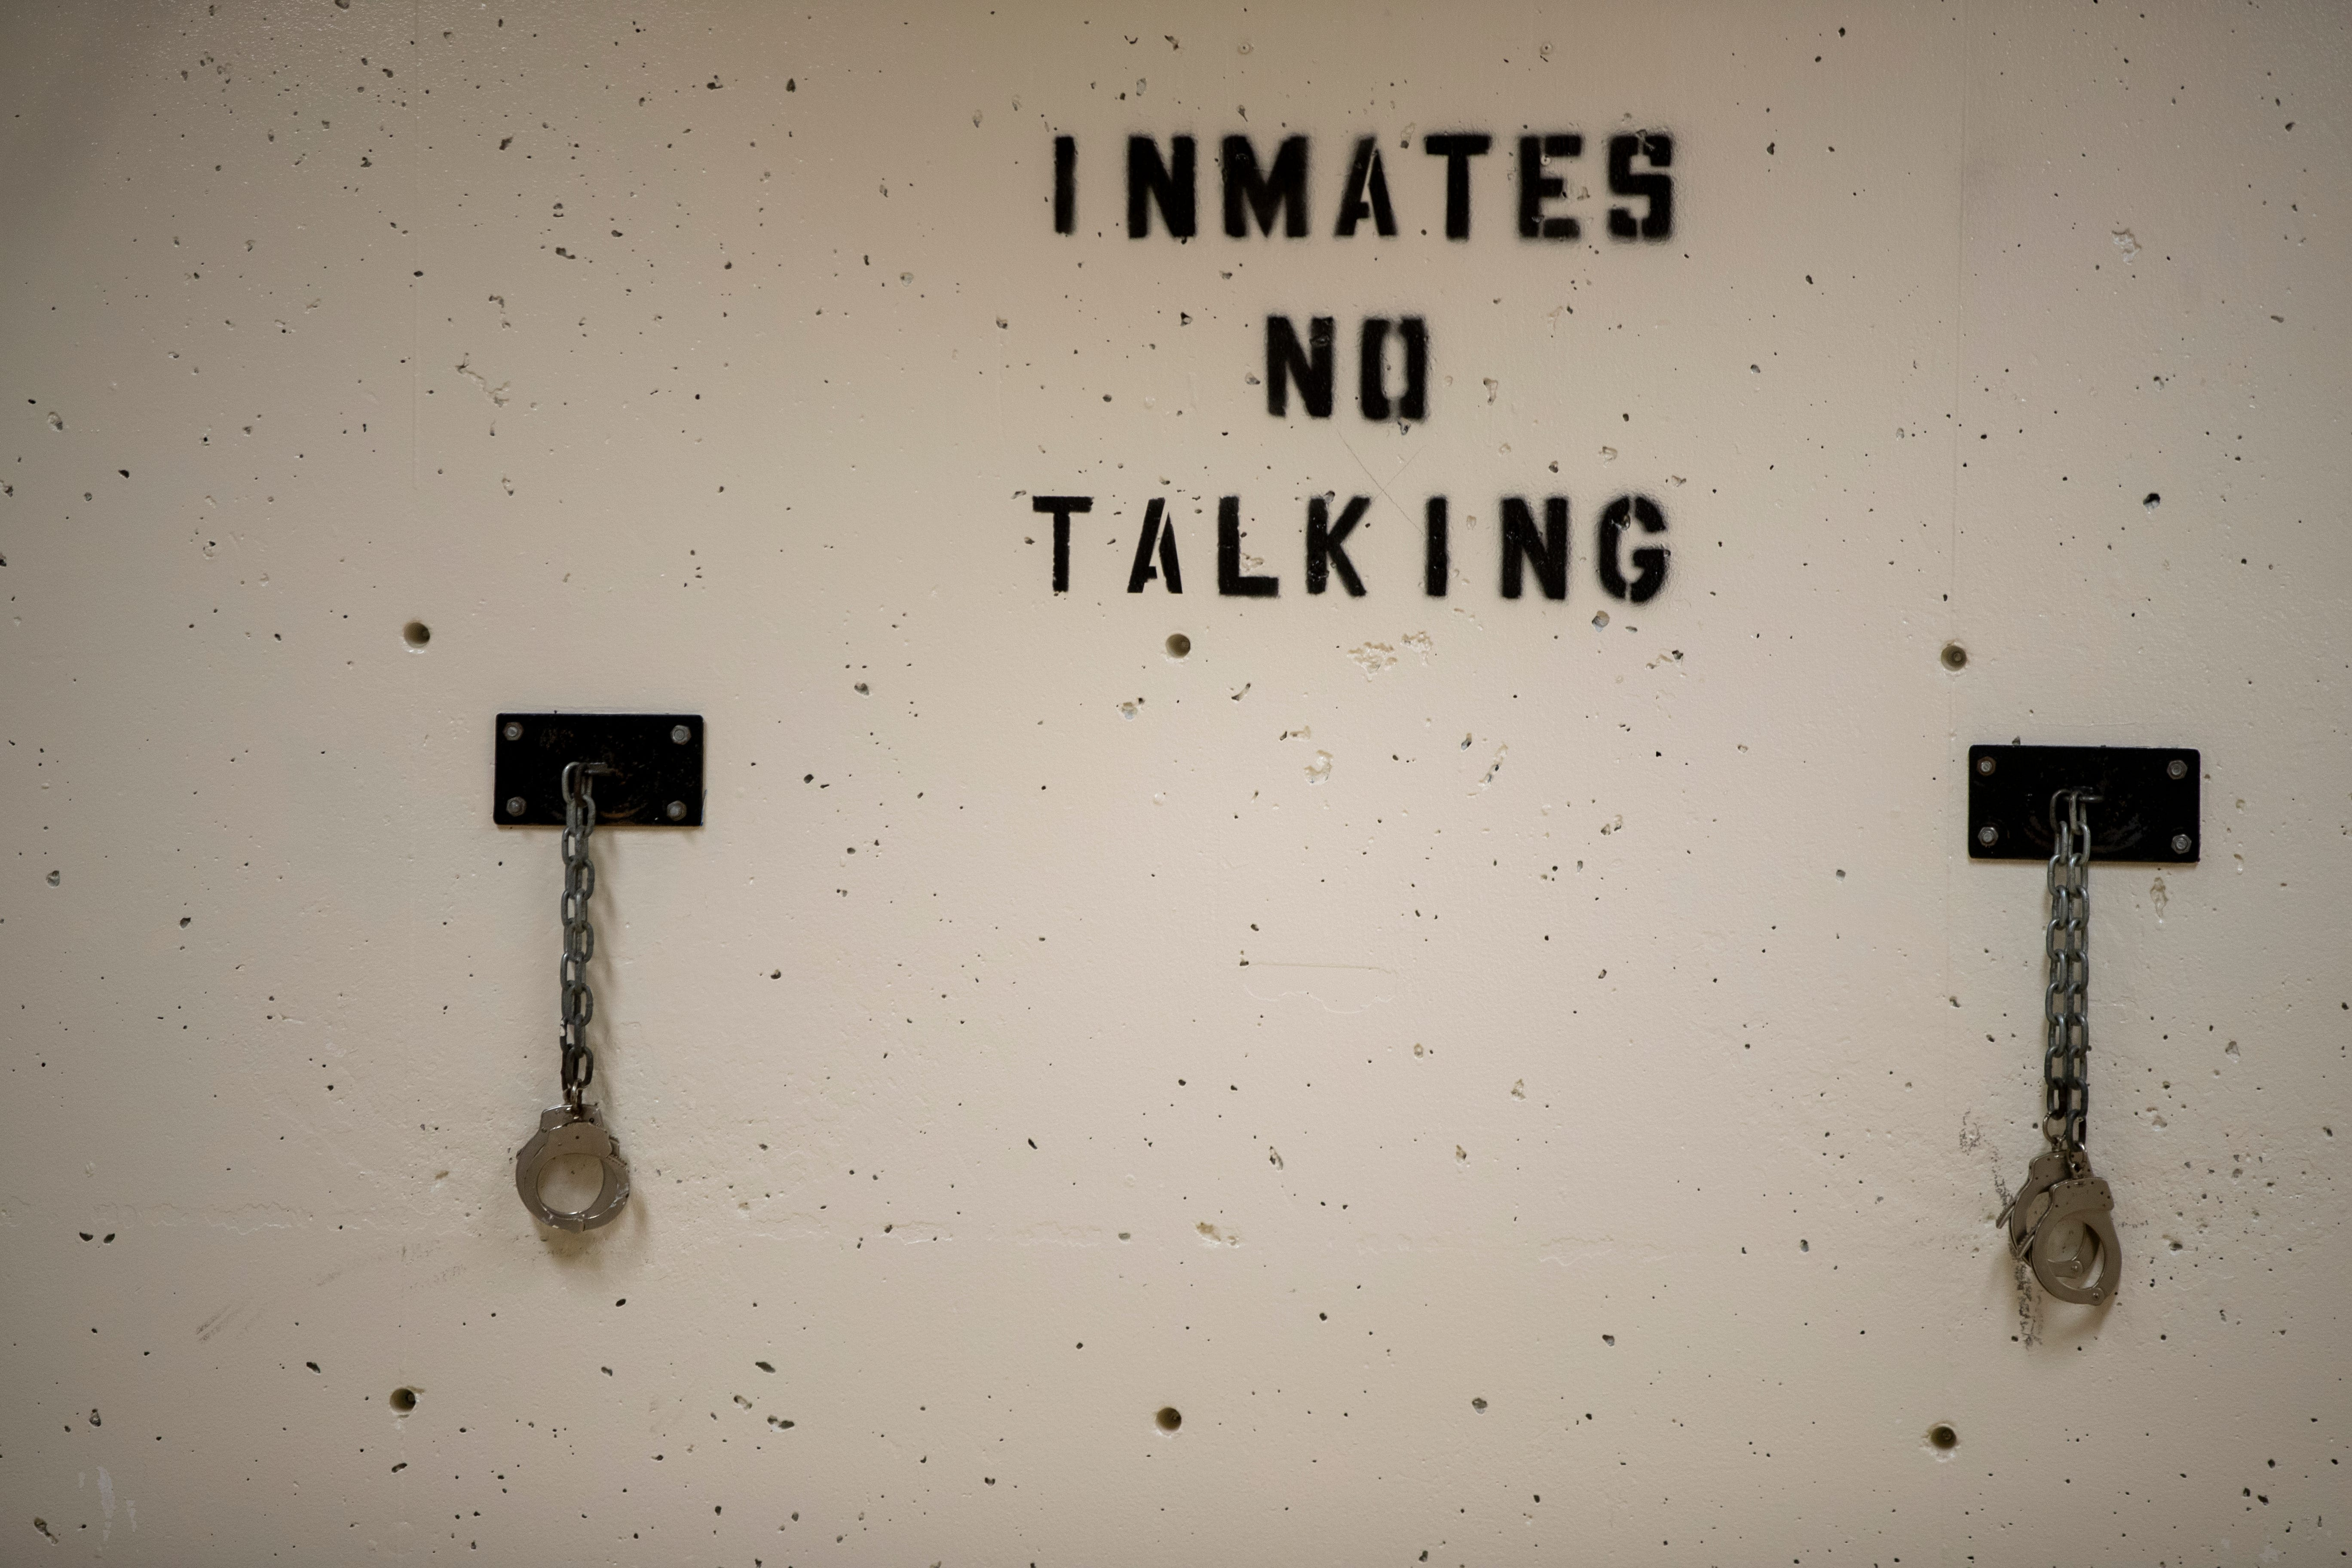 These wall-mounted hand cuffs are rarely used, but occasionally allow a jail official to lock a detainee to a wall in this open hallway at the Allen County Jail in Ft. Wayne, Ind.